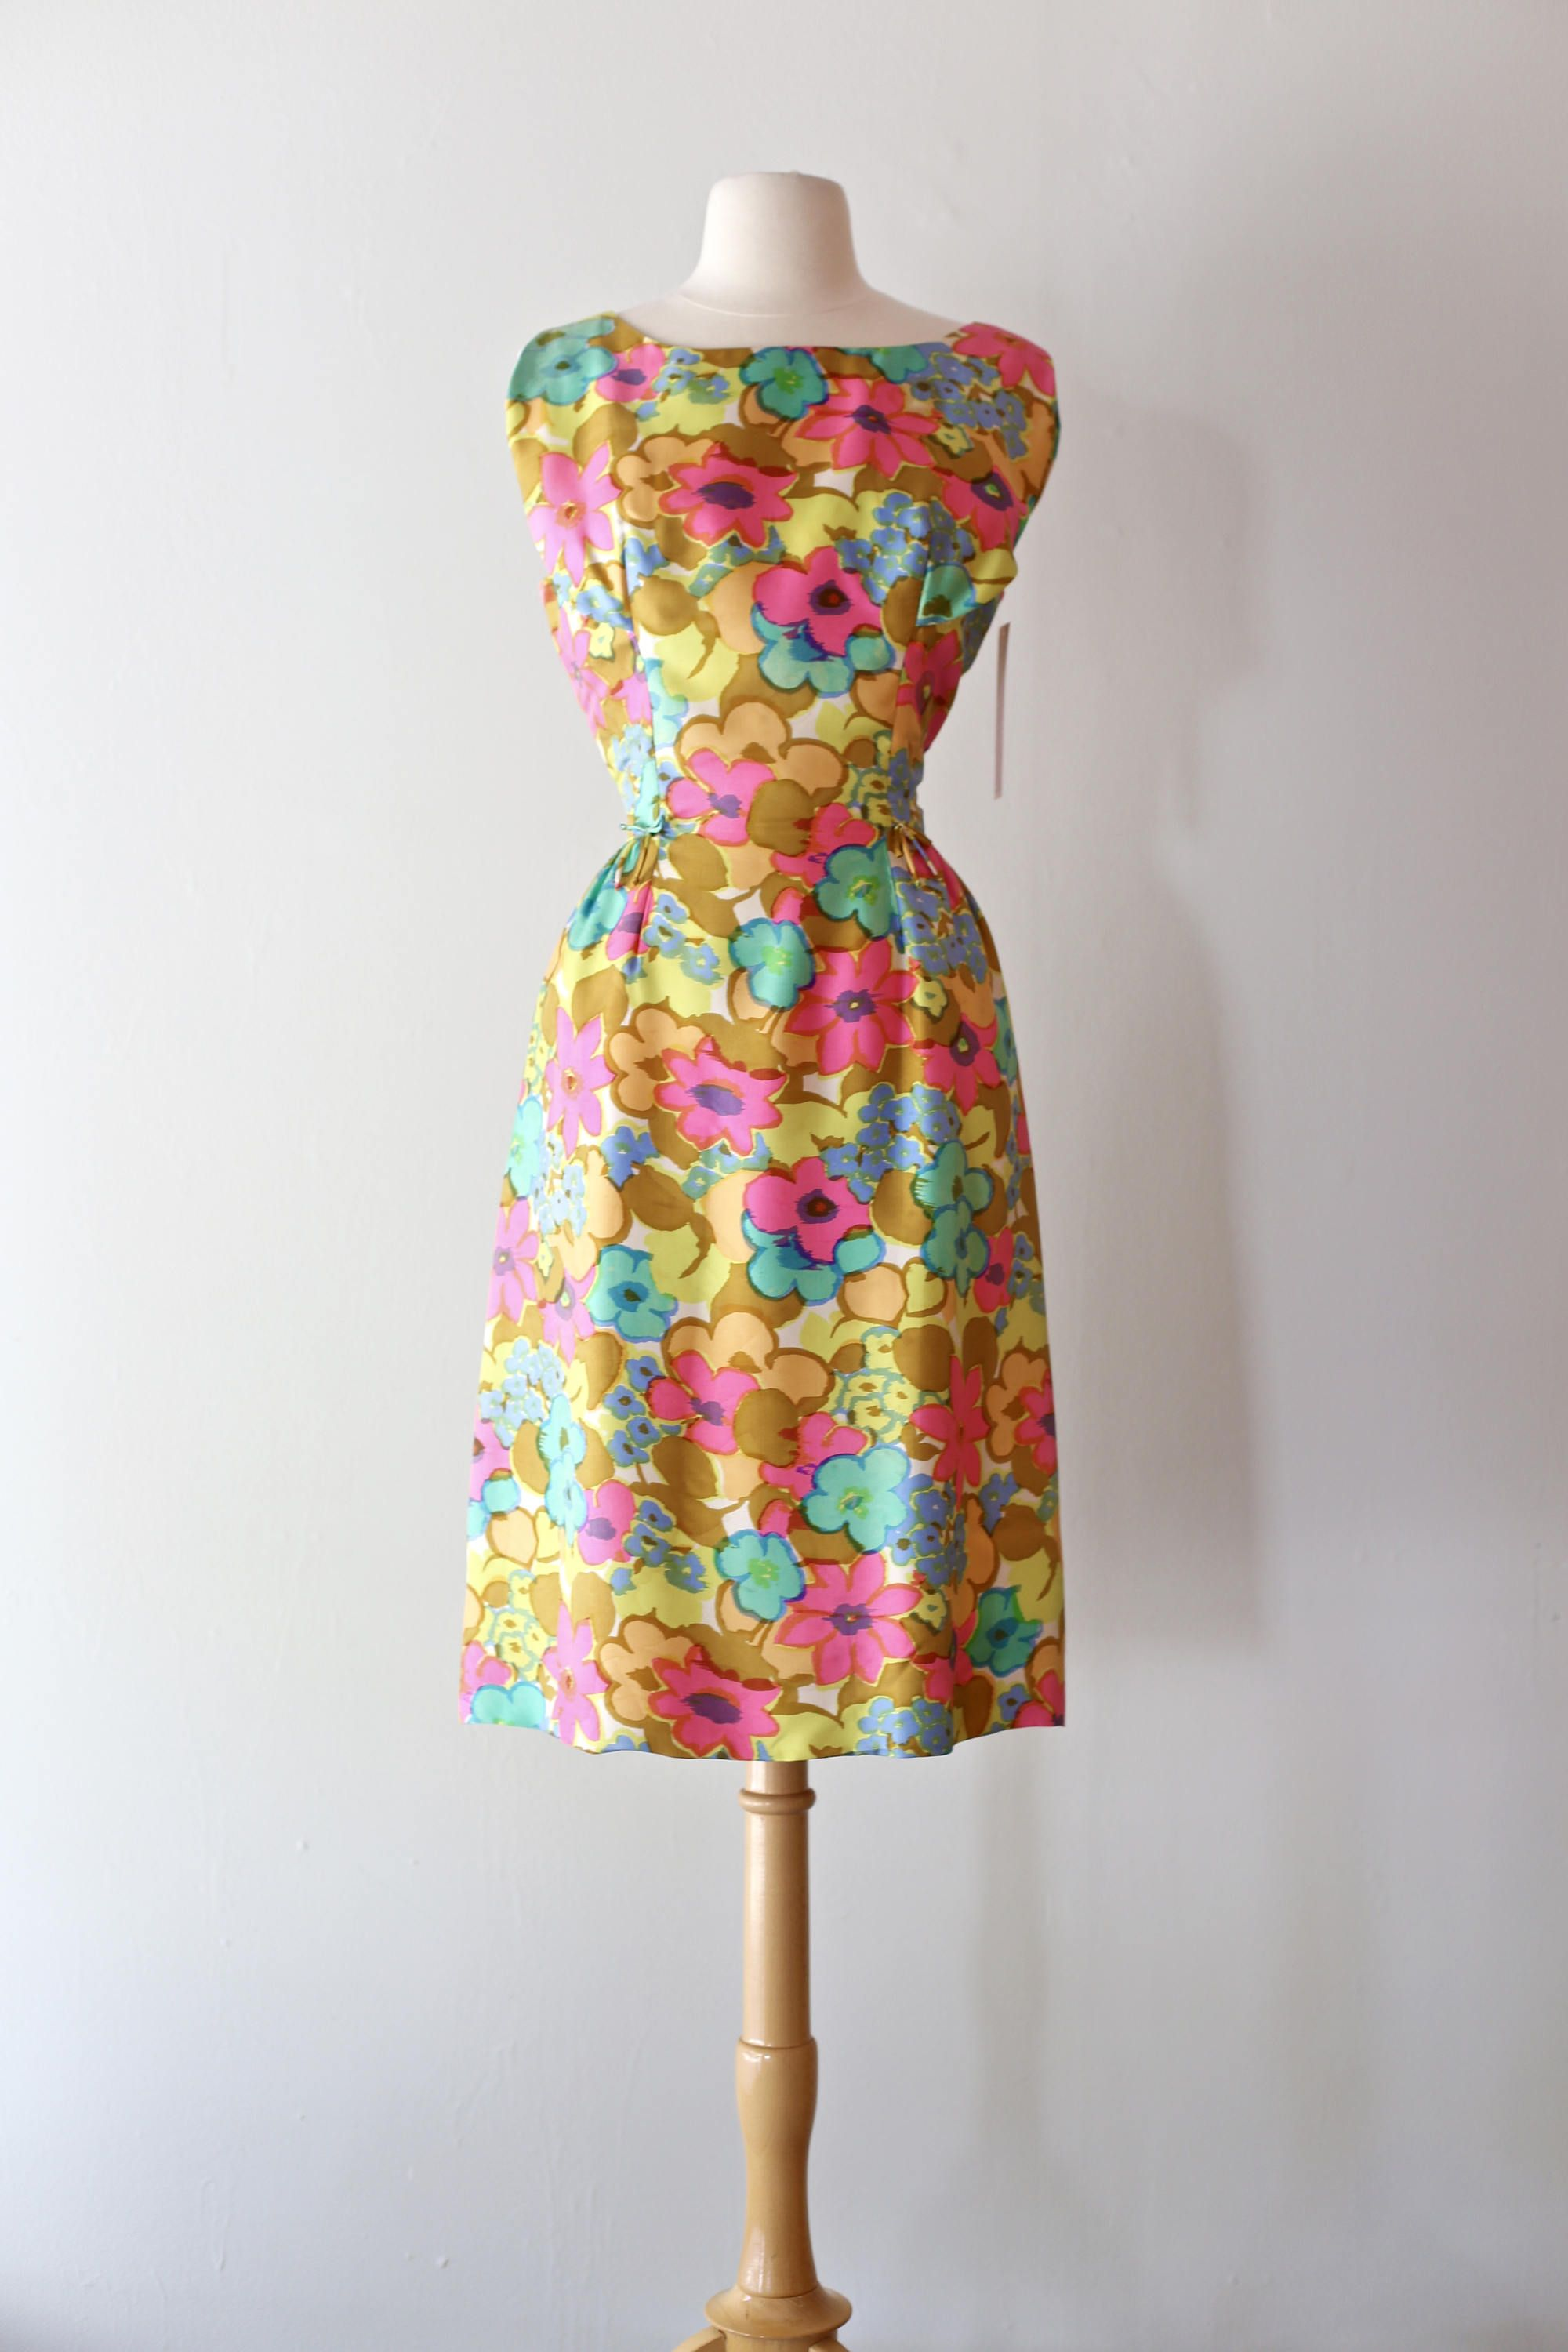 Vintage 1960 S Silk Abstract Floral Print Cocktail Dress By Joan Leslie Vintage 60s Dress Bright Spring Floral Prints Abstract Floral Print Vintage Dress 60s [ 3000 x 2000 Pixel ]